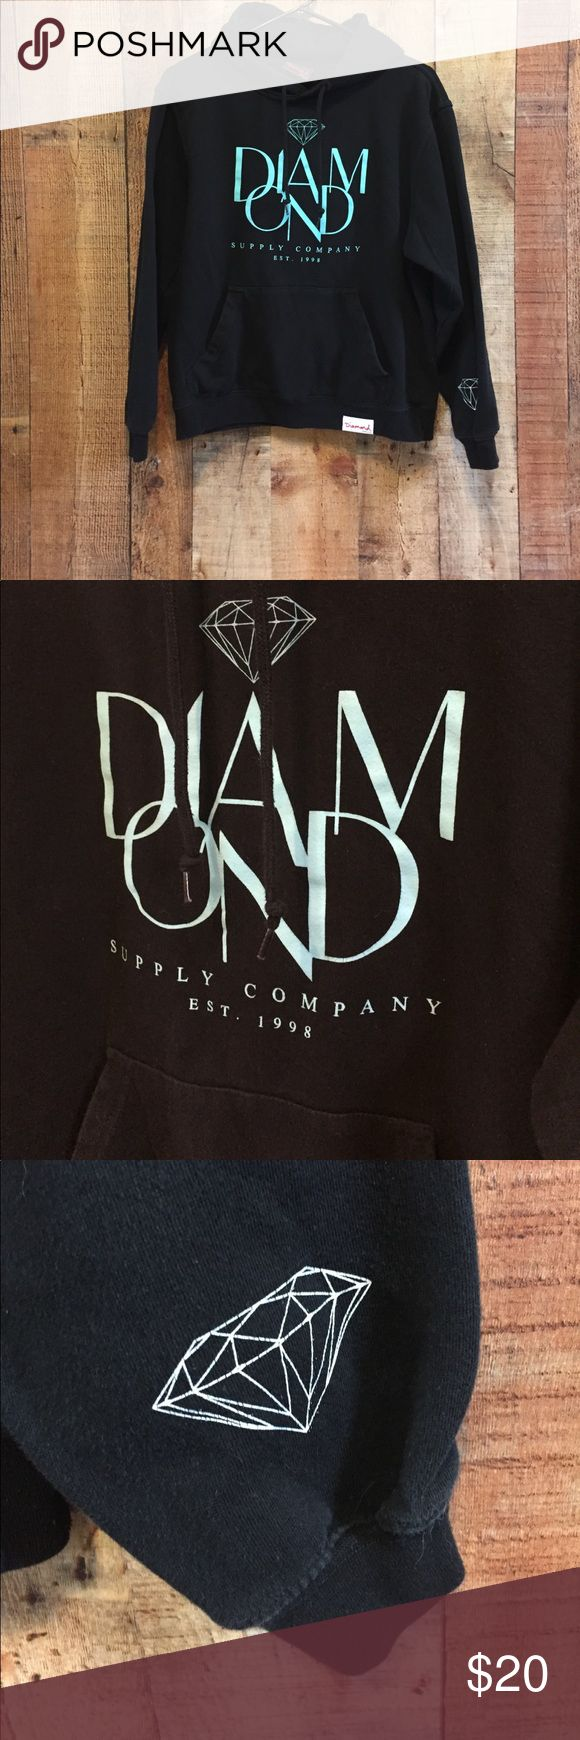 Diamond Supply Company Hoodie Black Diamond Supply Company hoodie. Writing is in turquoise. In great shape. Some normal pilling along the bottom ribbing but nothing noticeable. Has front pouch for keeping both hands warm.  80% Cotton / 20% Polyester  Machine Wash Cold / Line Dry  Size M BUT fits like a Small Diamond Supply Co. Tops Sweatshirts & Hoodies